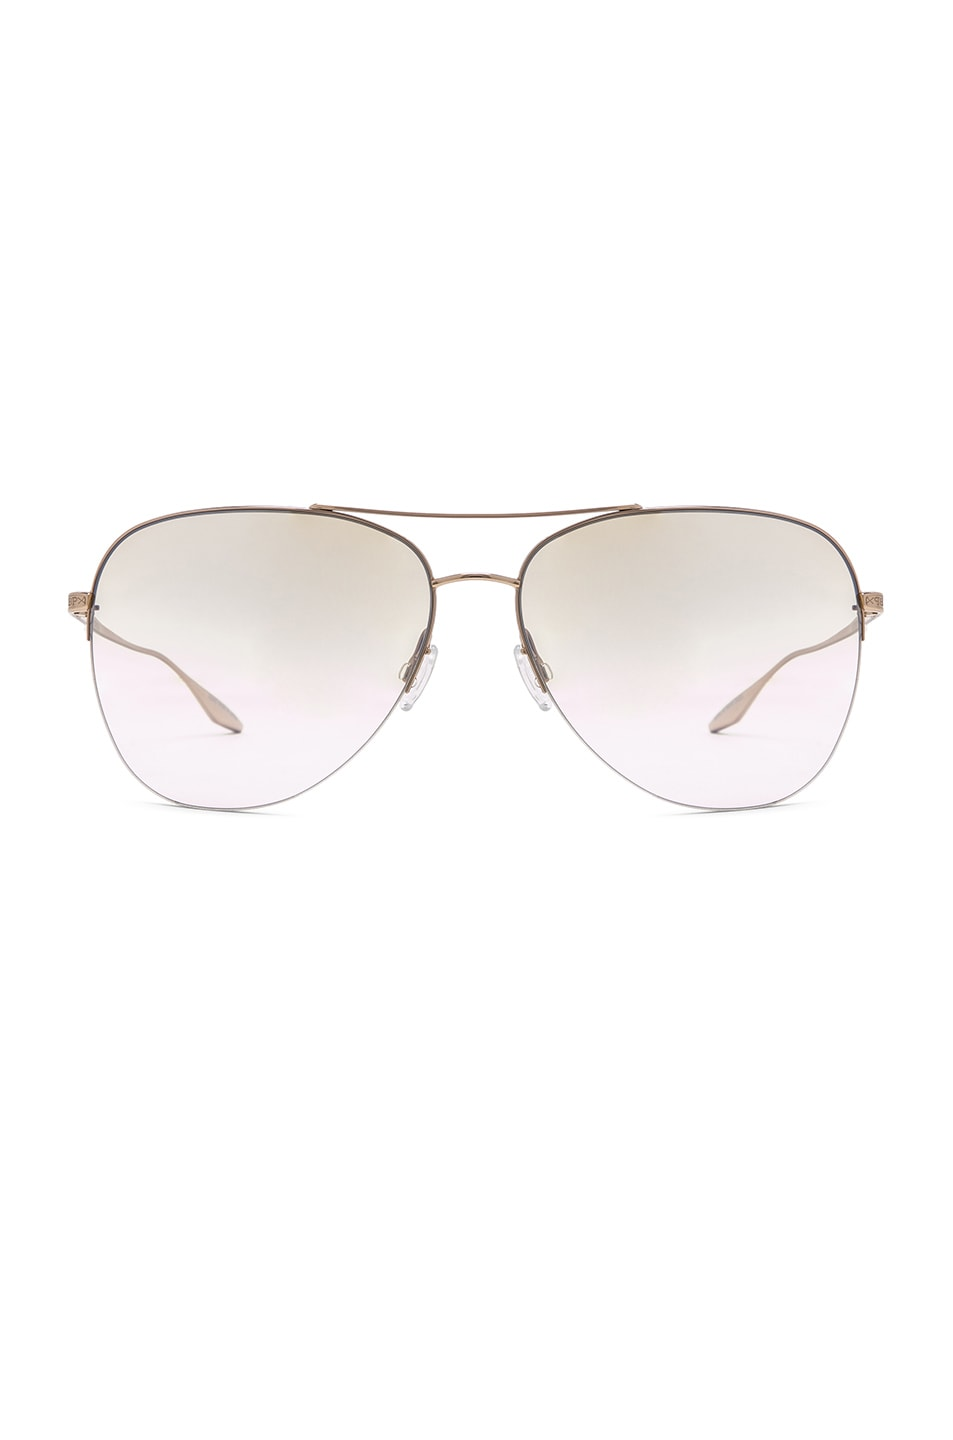 70983be8f Image 1 of Barton Perreira Chevalier Sunglasses in Gold & Yellow Mirror